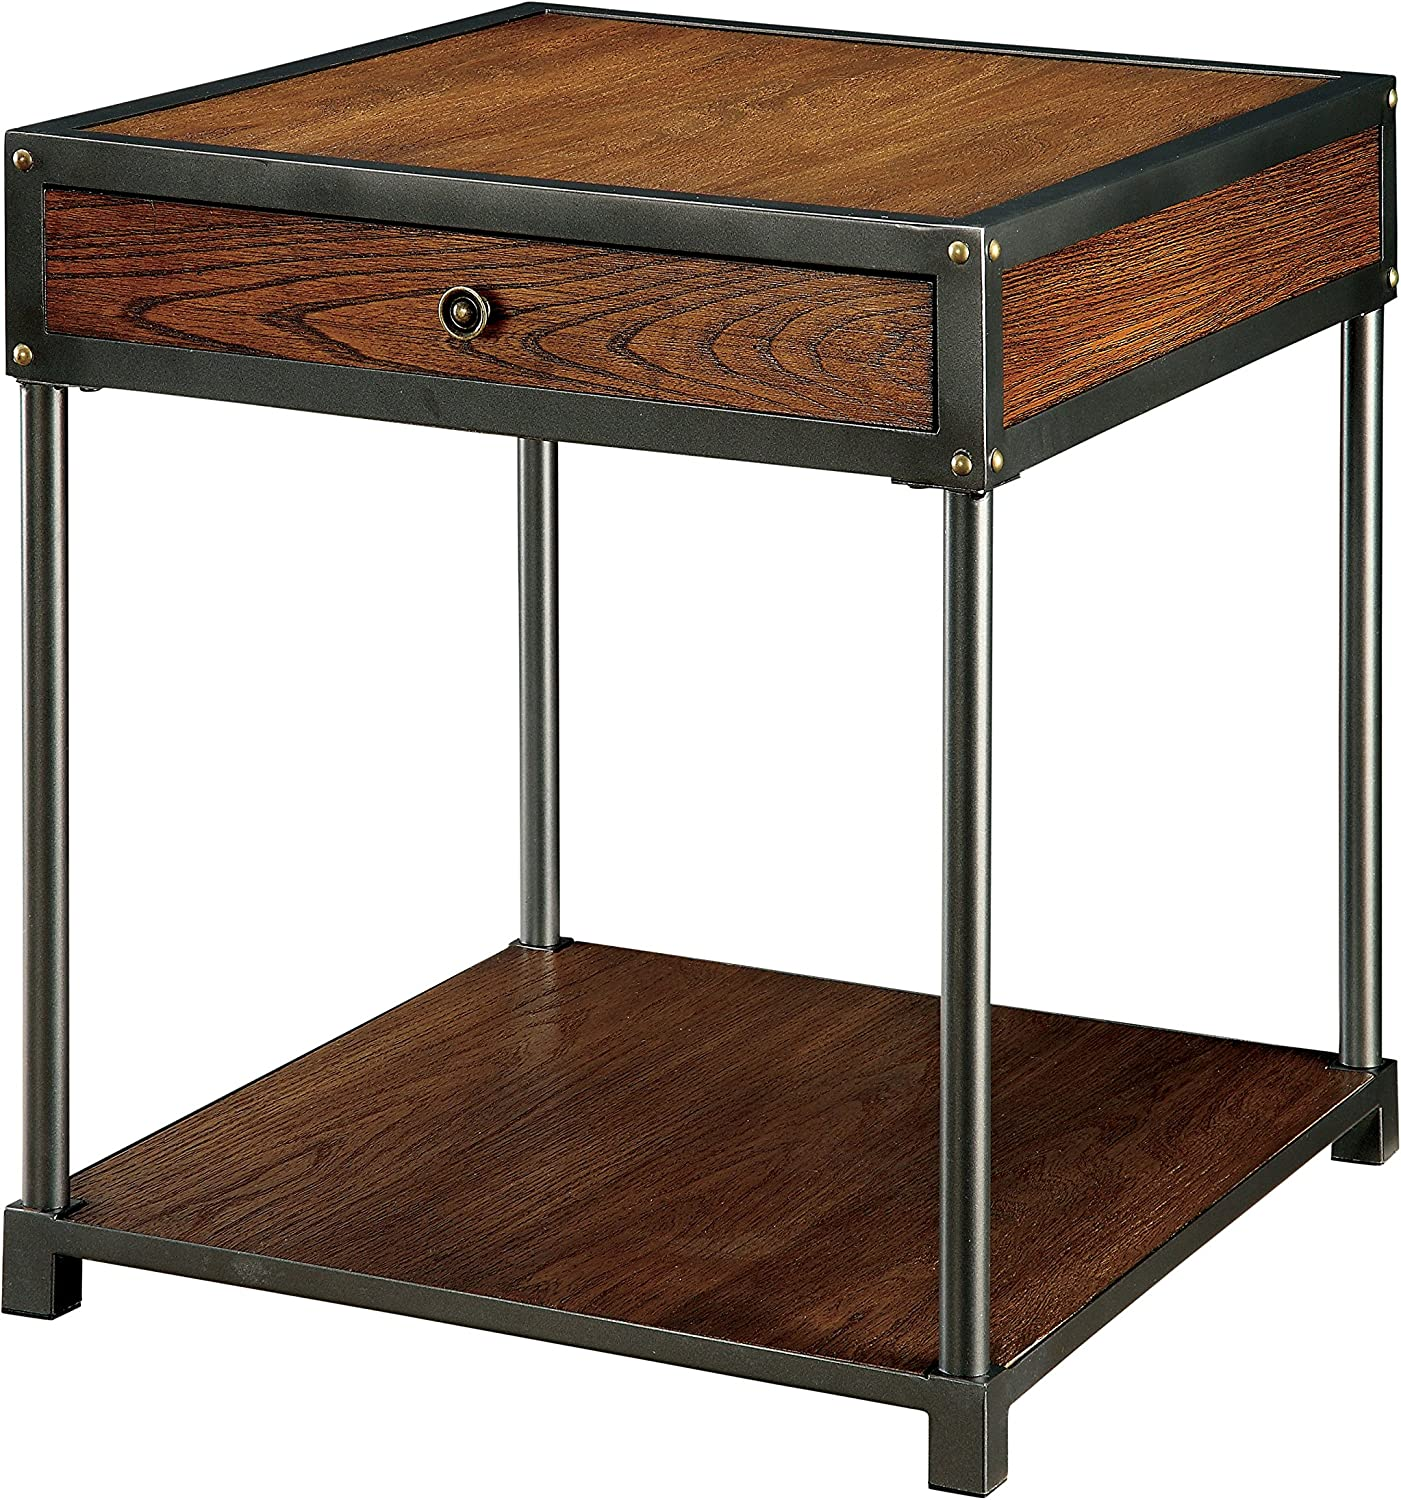 Furniture of America Clyde Coffee Table with Drawer